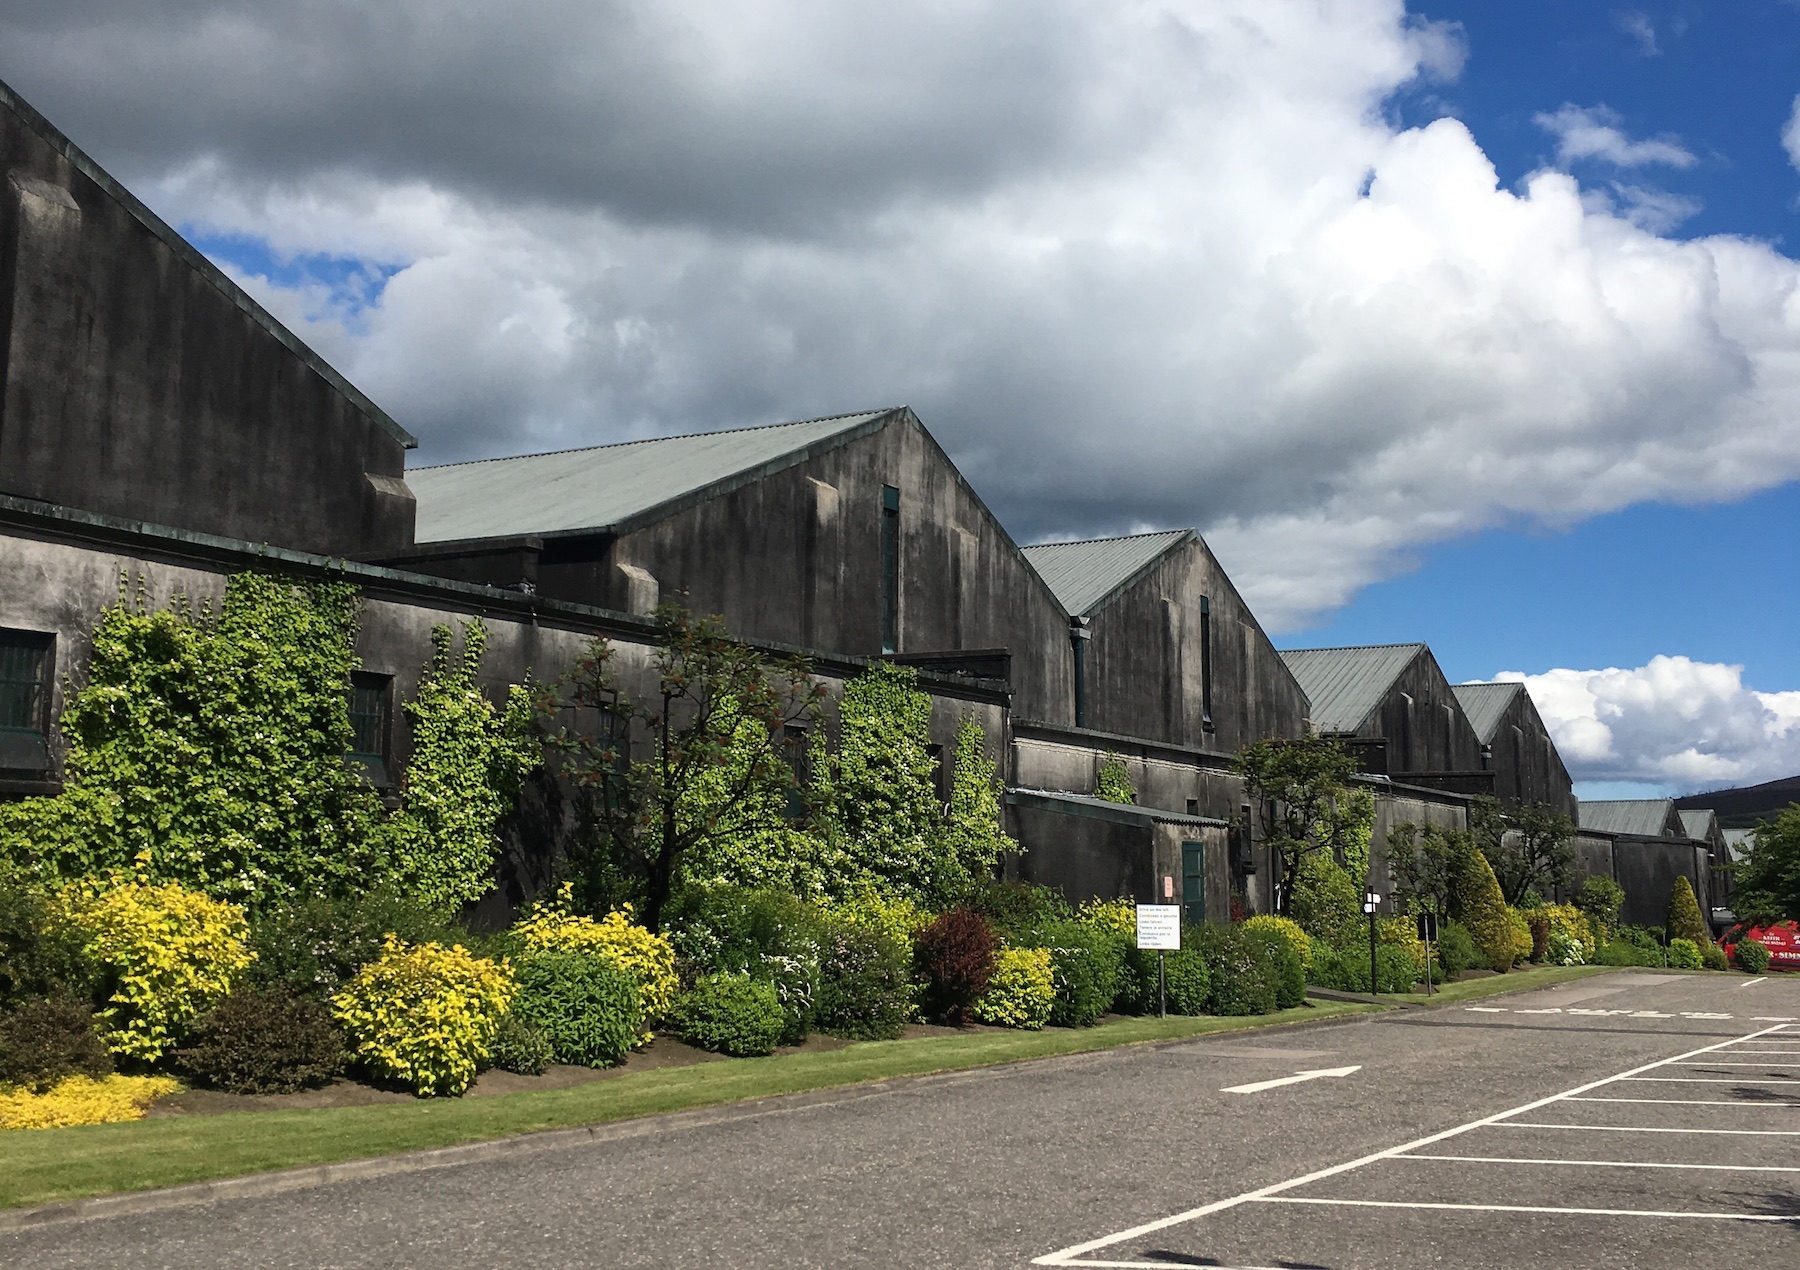 Glenlivet Warehouses